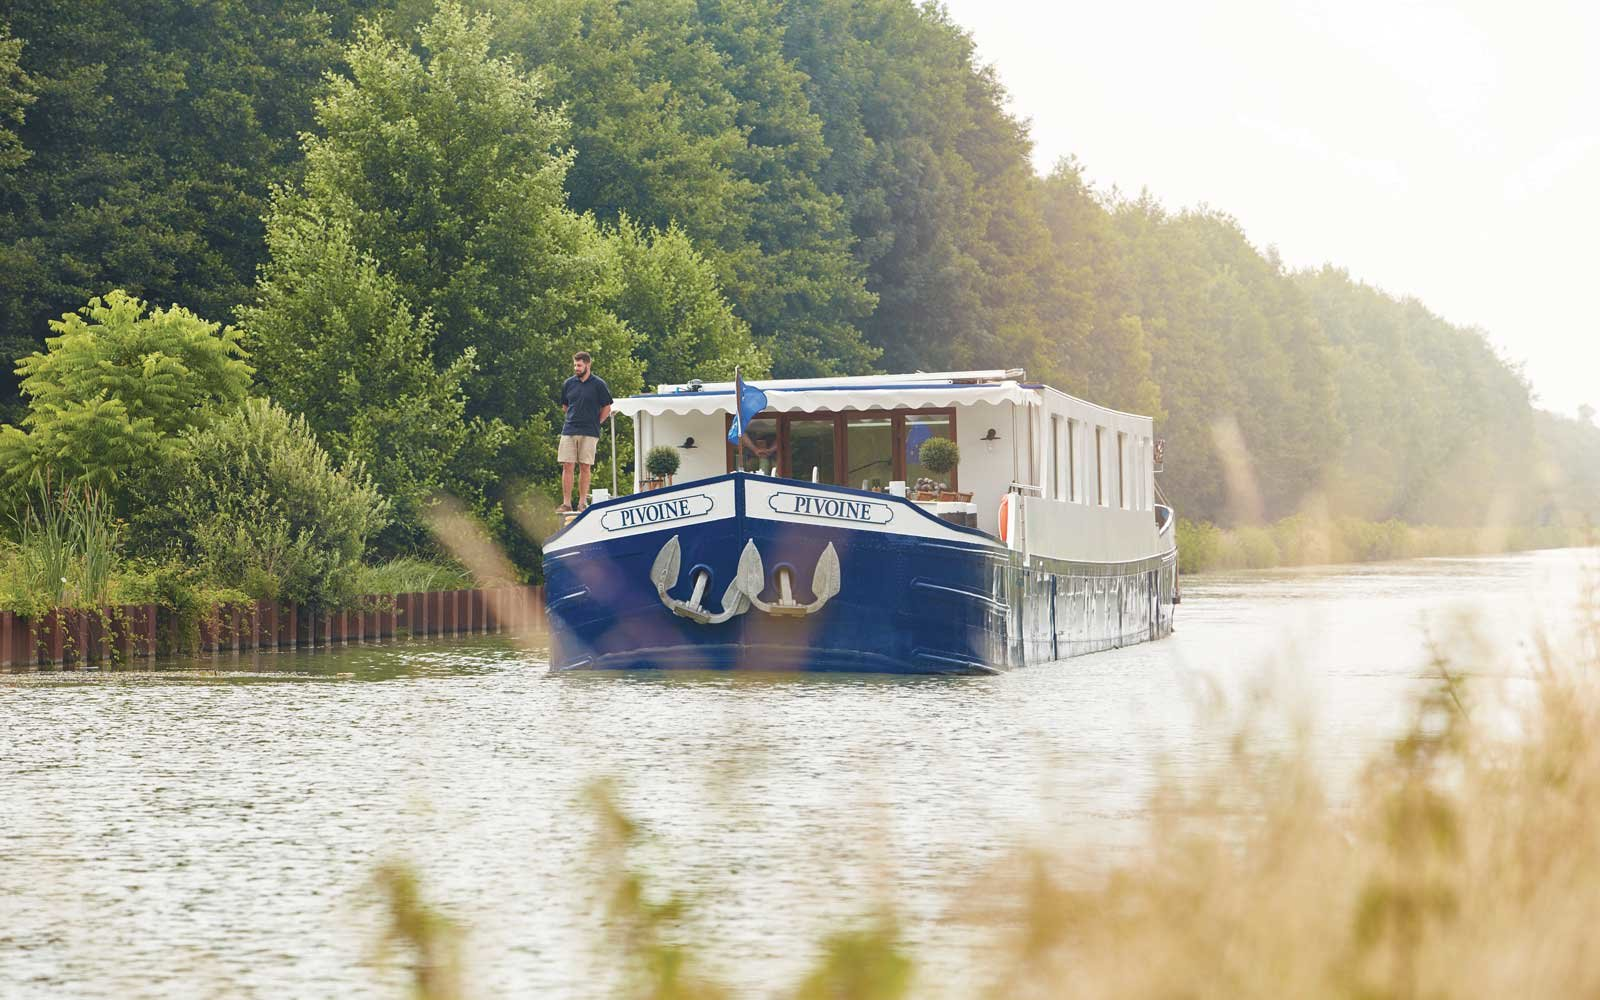 Belmond Afloat on the river